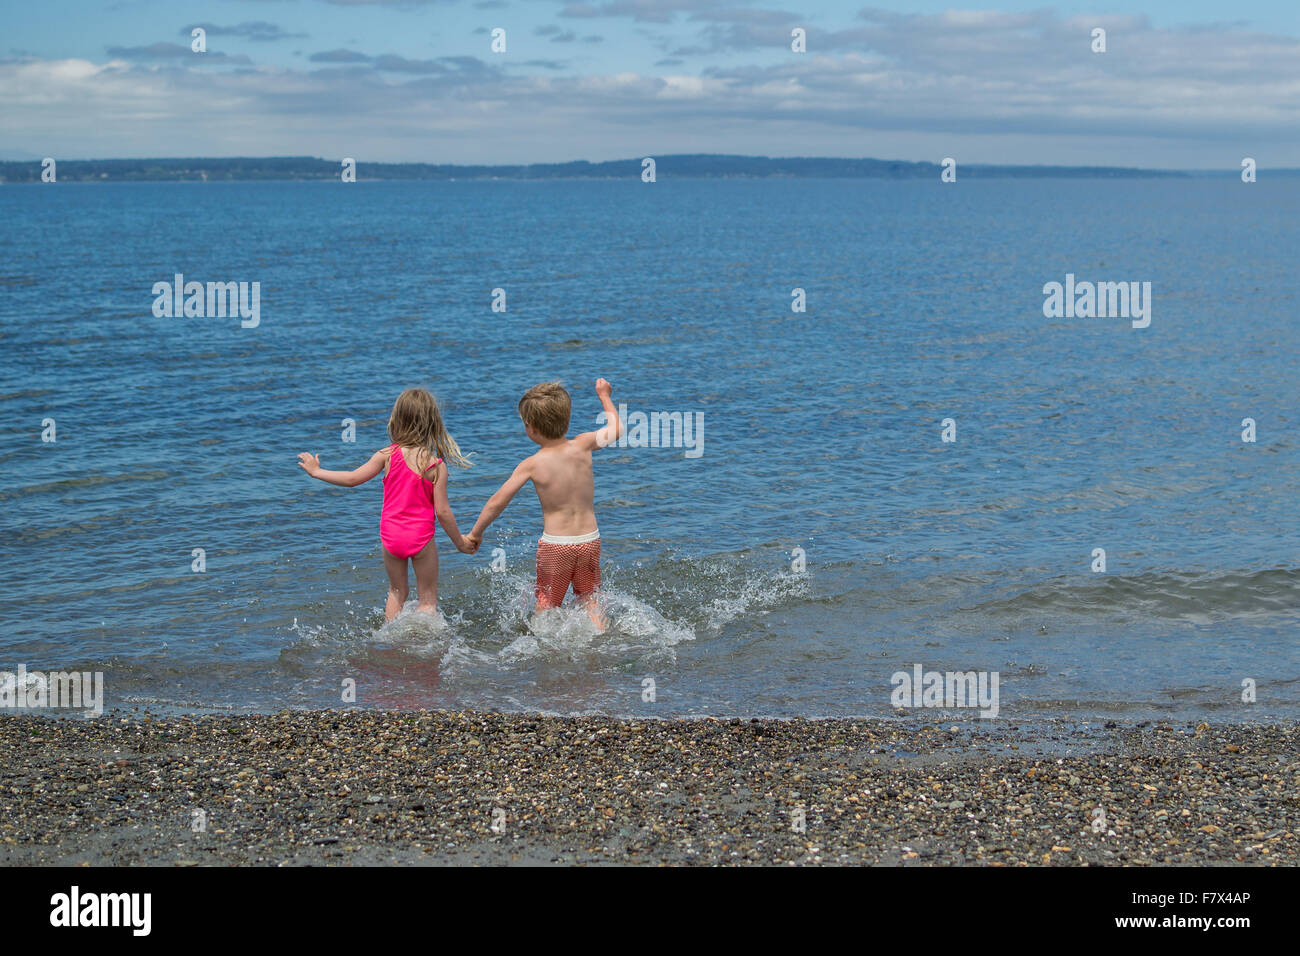 Boy and girl holding hands running into the sea Stock Photo